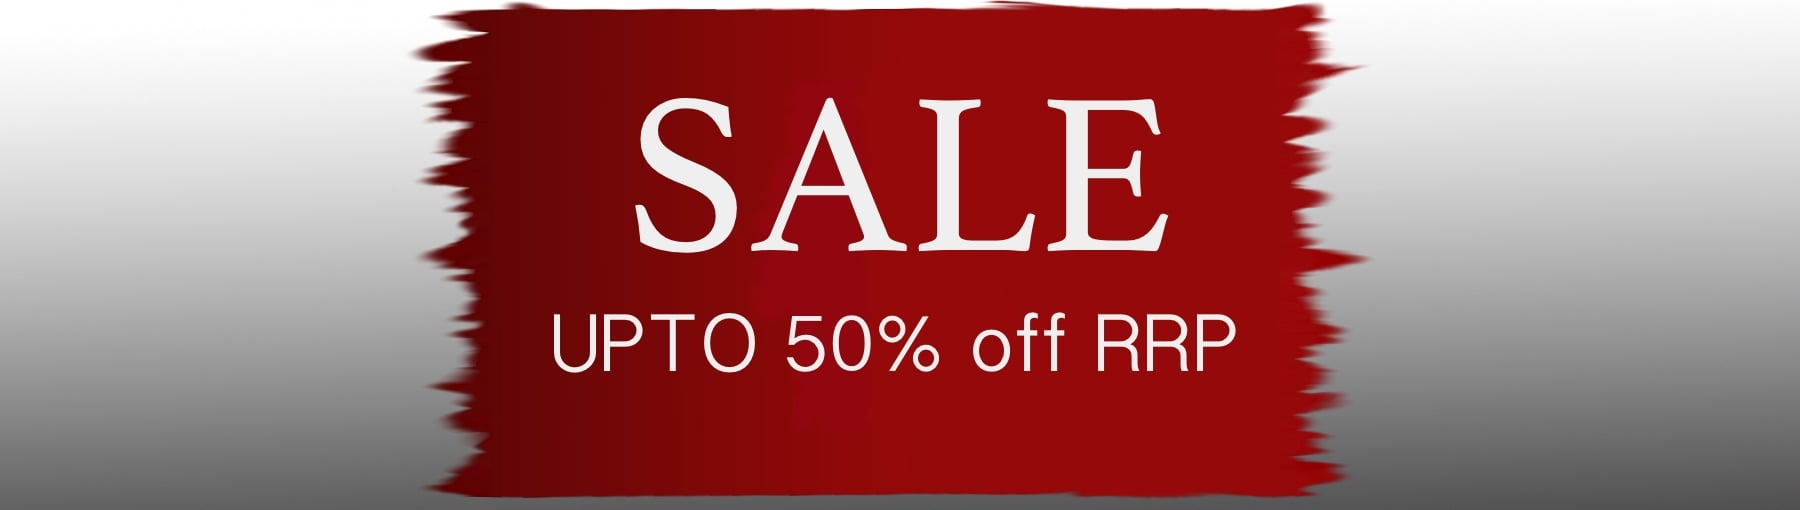 SALE upto 50% off RRP